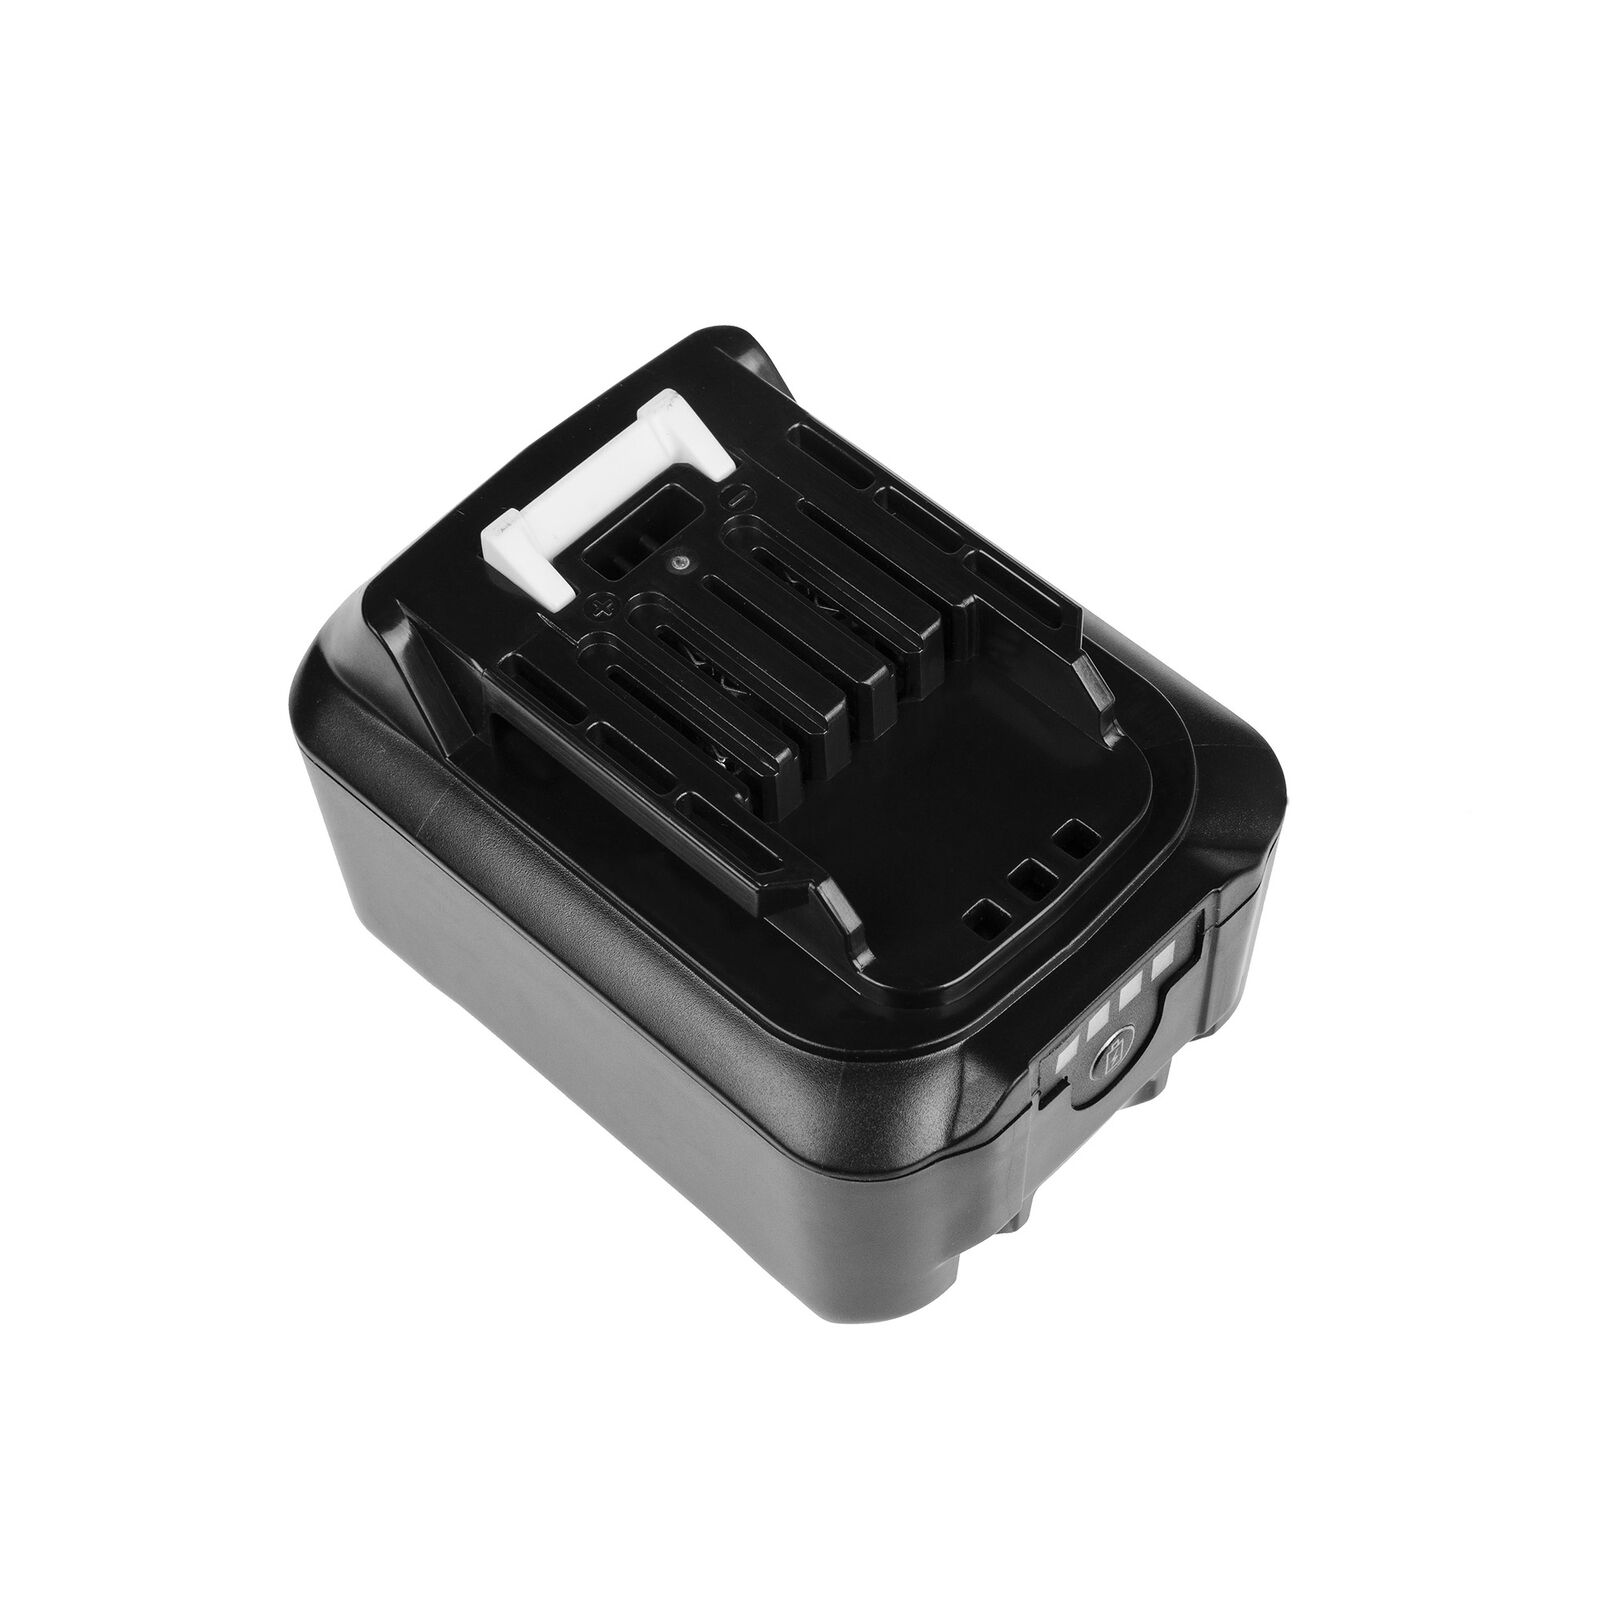 Makita 12V CT226 CT226RX DT03 DT03R1 FD05 FD05R1 FD06R1 compatible Battery